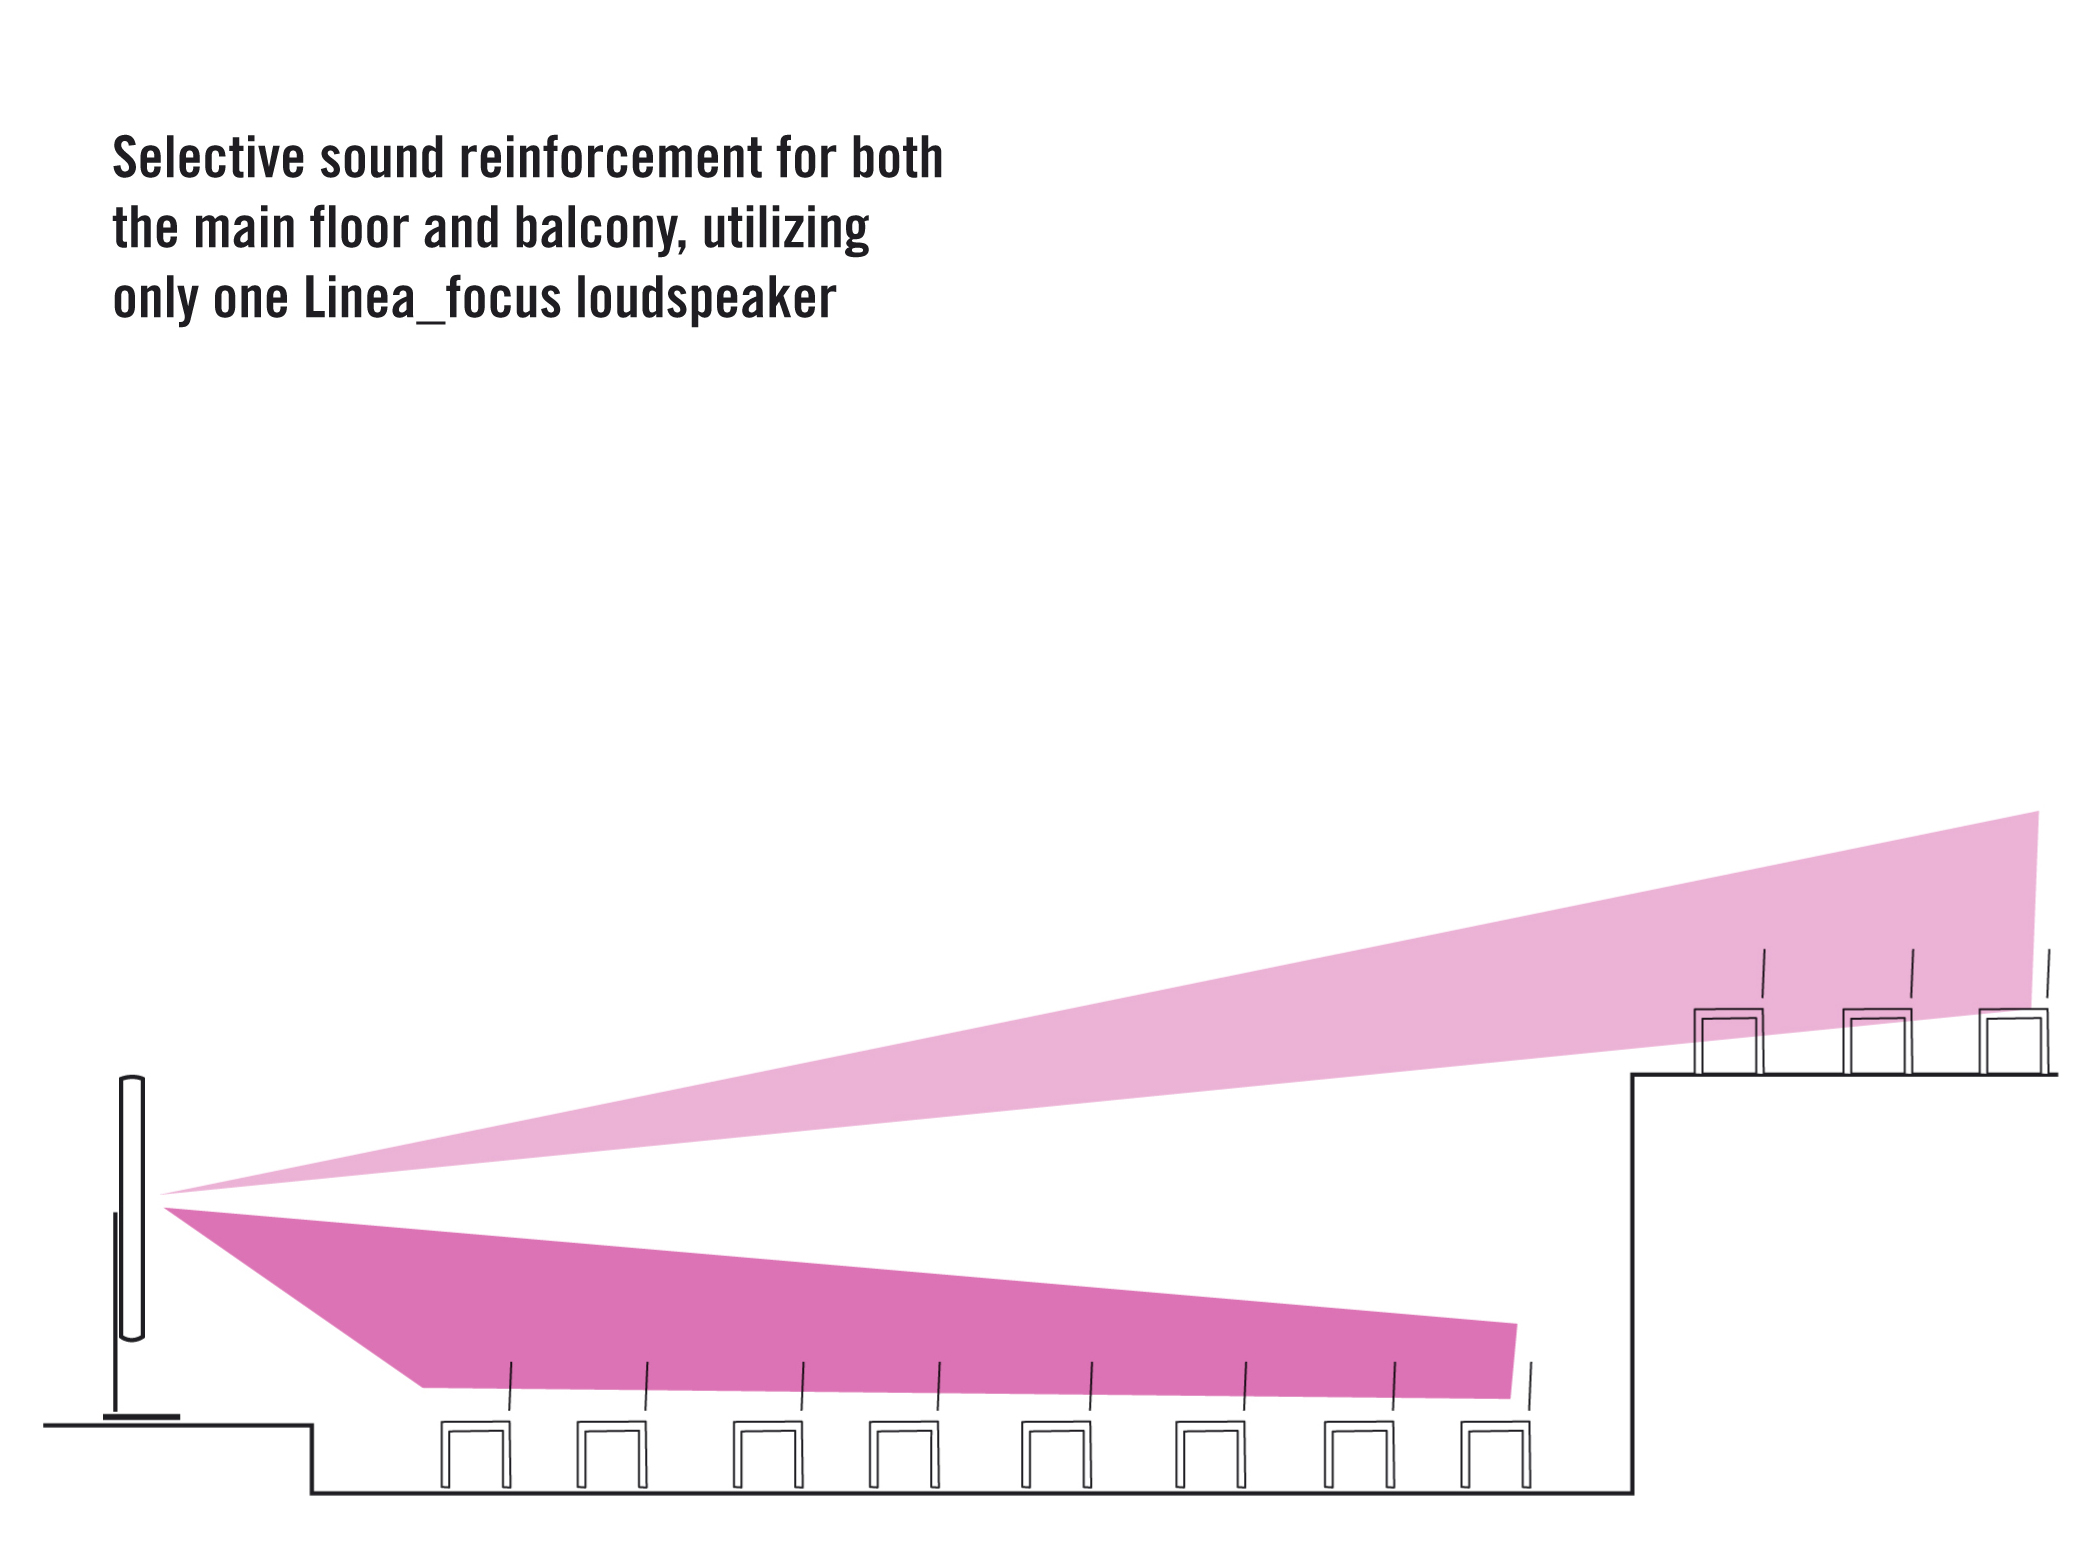 Fohhn, LFi-450 Install Series Active Electronically Steerable Line Array Speaker 32x4  32DSP Wit